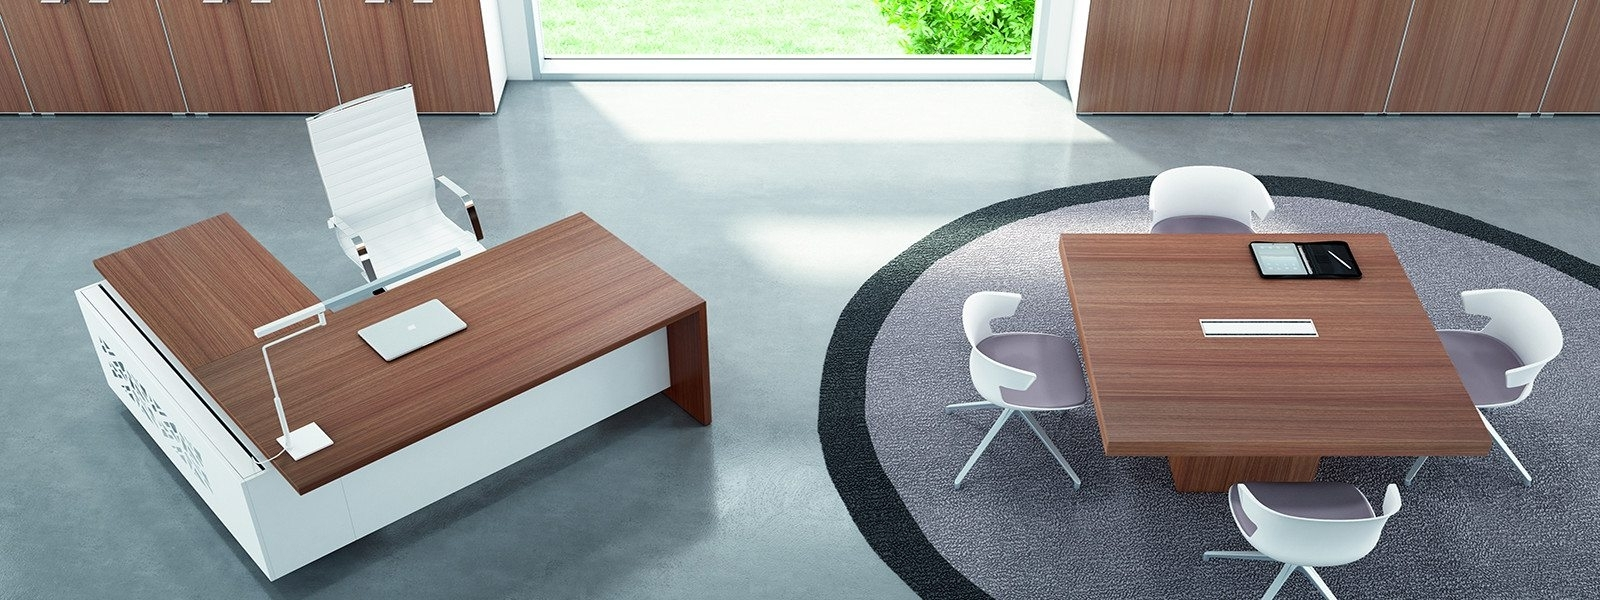 Motiva Office With Regard To Italian Executive Office Chairs (View 7 of 20)